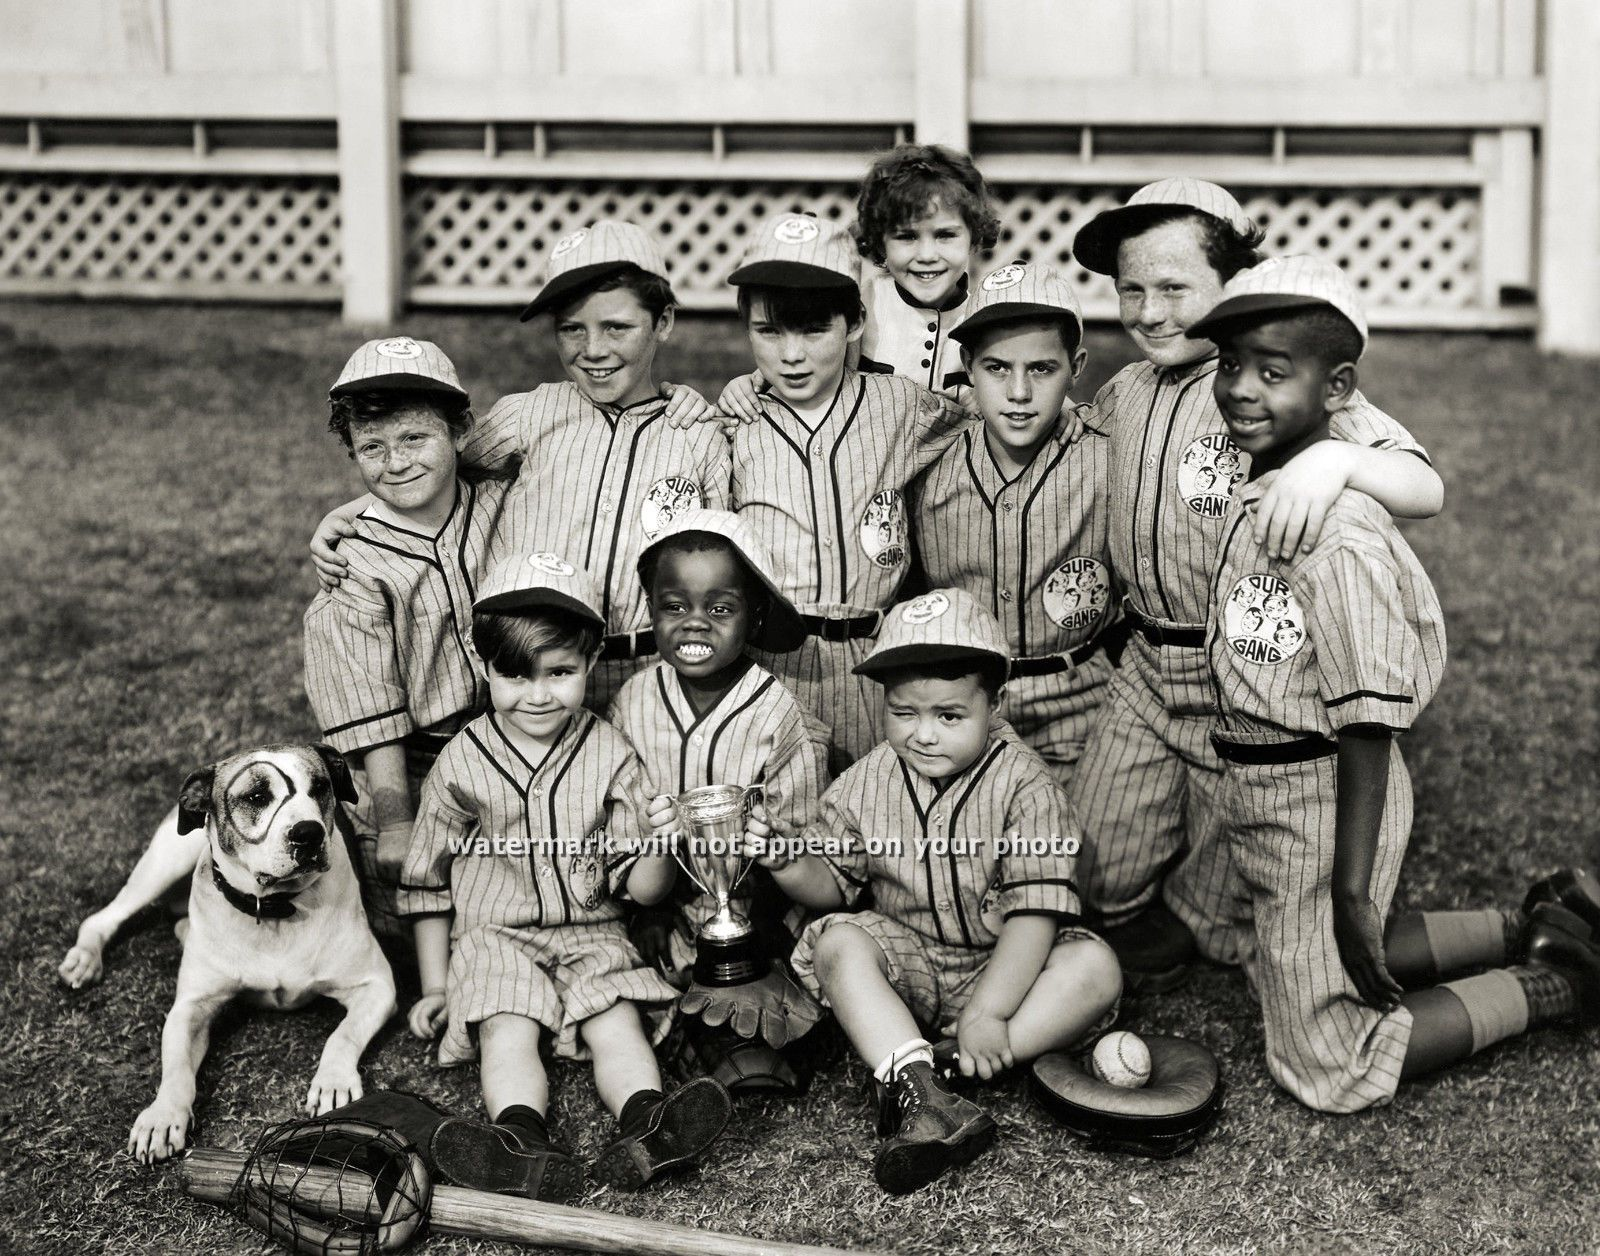 """New 8x10 Photo: """"Our Gang"""", The Little Rascals - Alfalfa ..."""